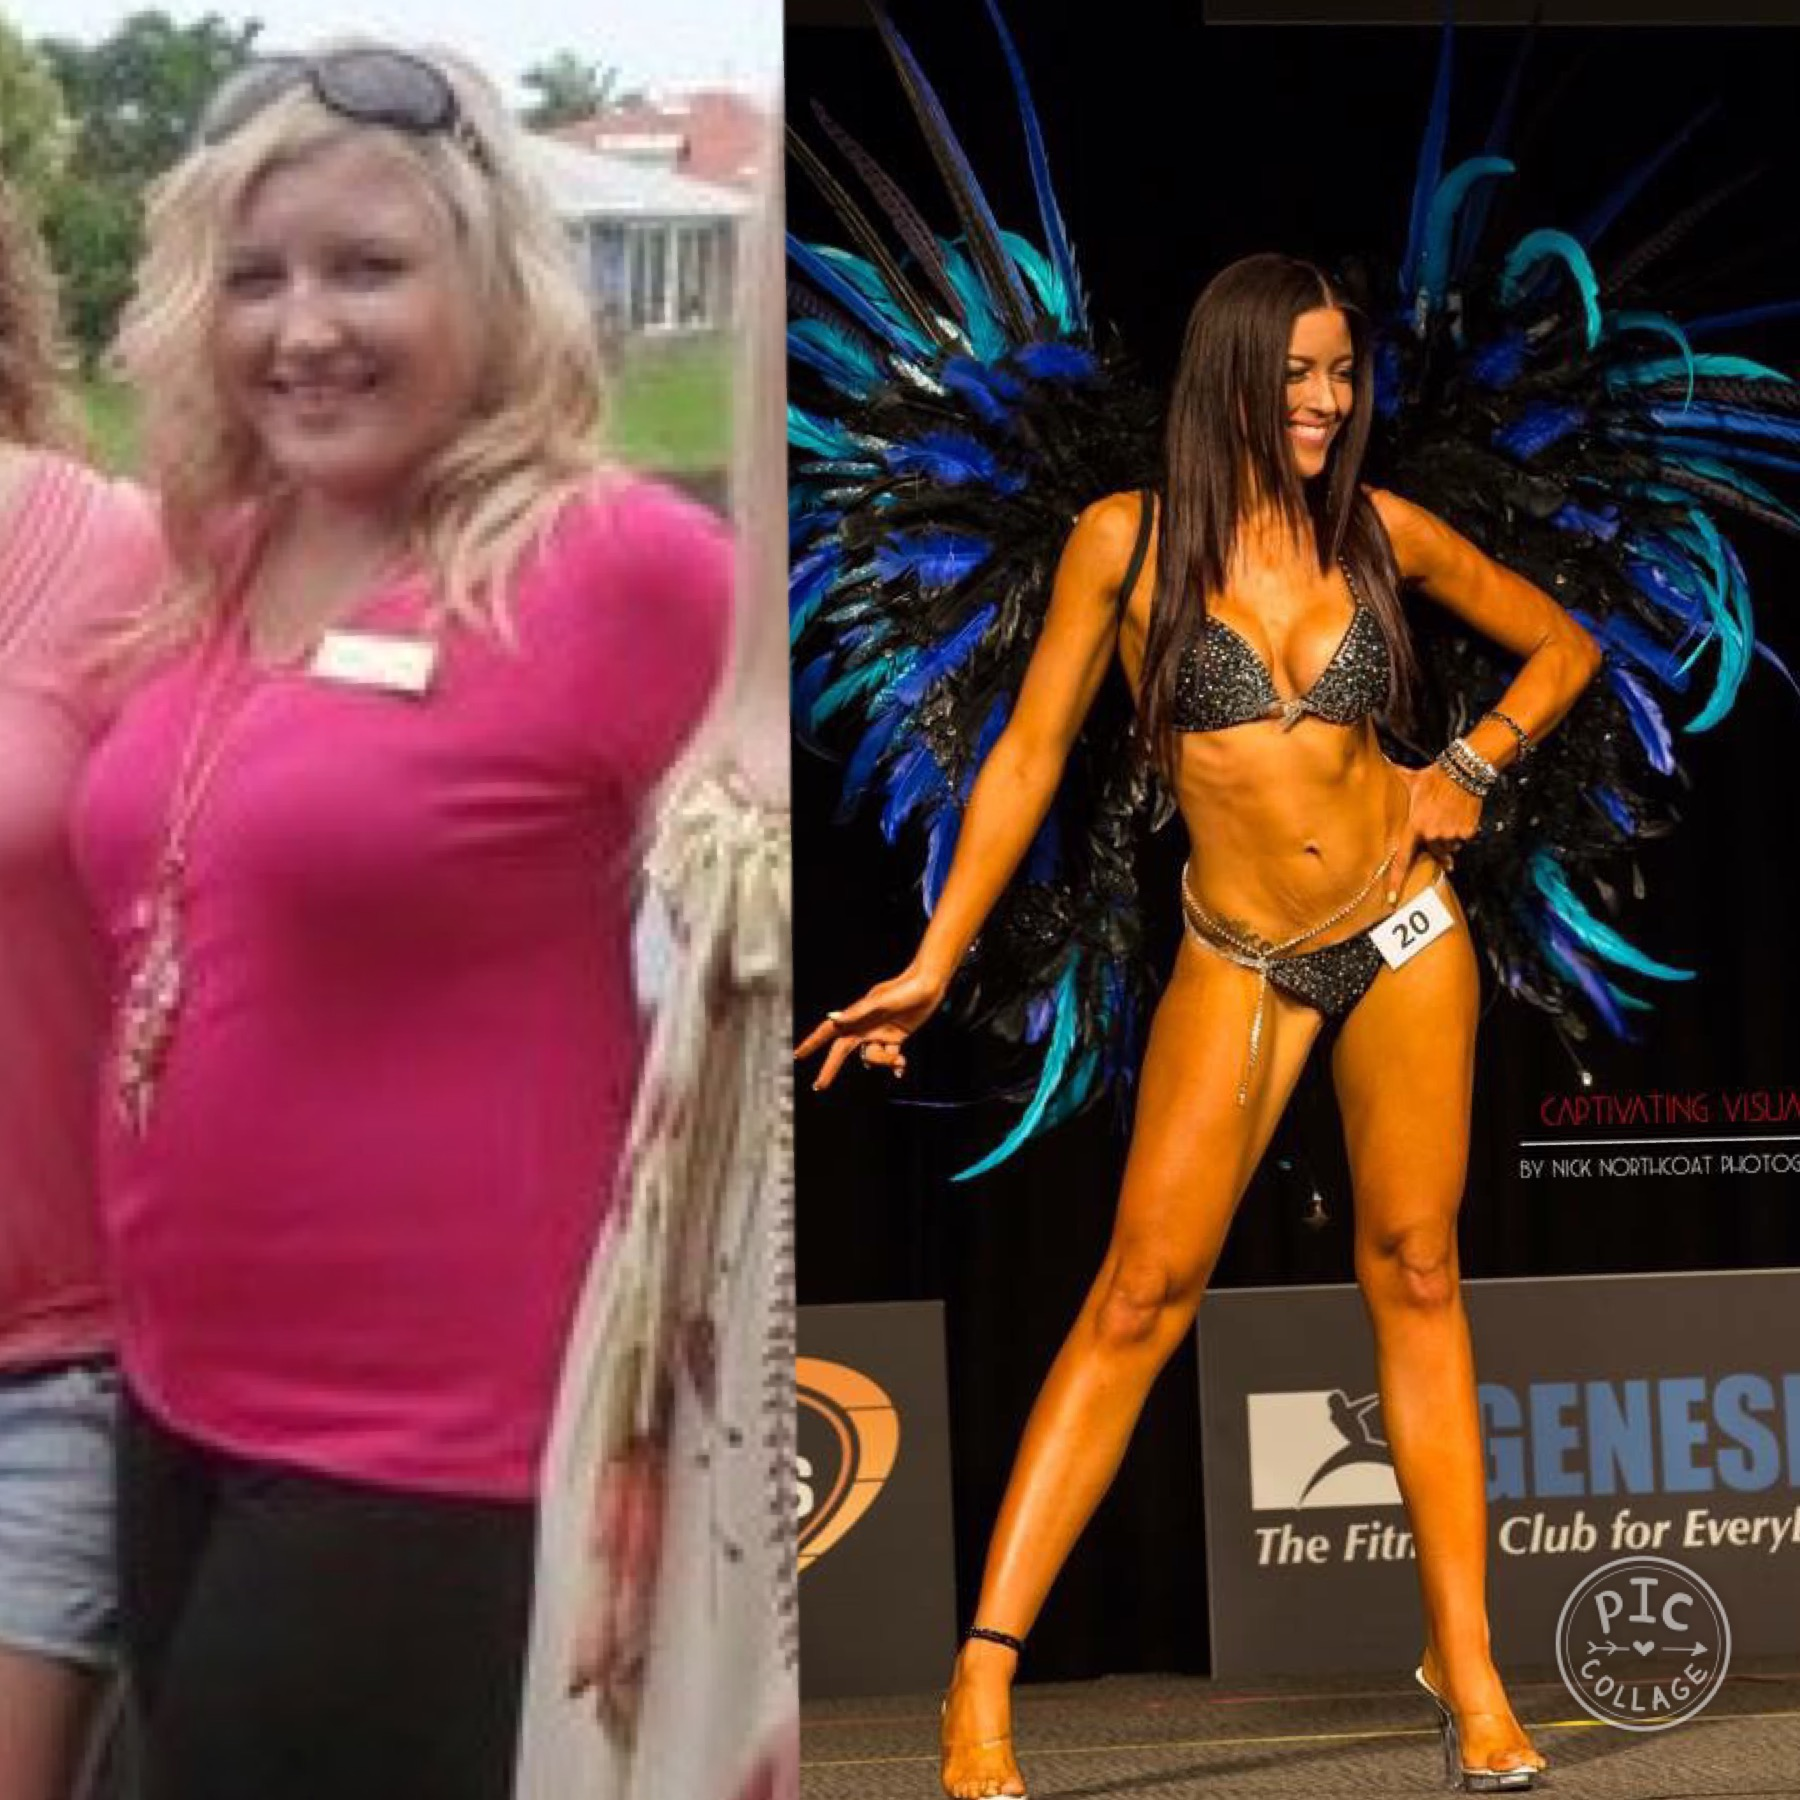 fat loss weight training nutritional coaching personal trainer transformation 2.JPG